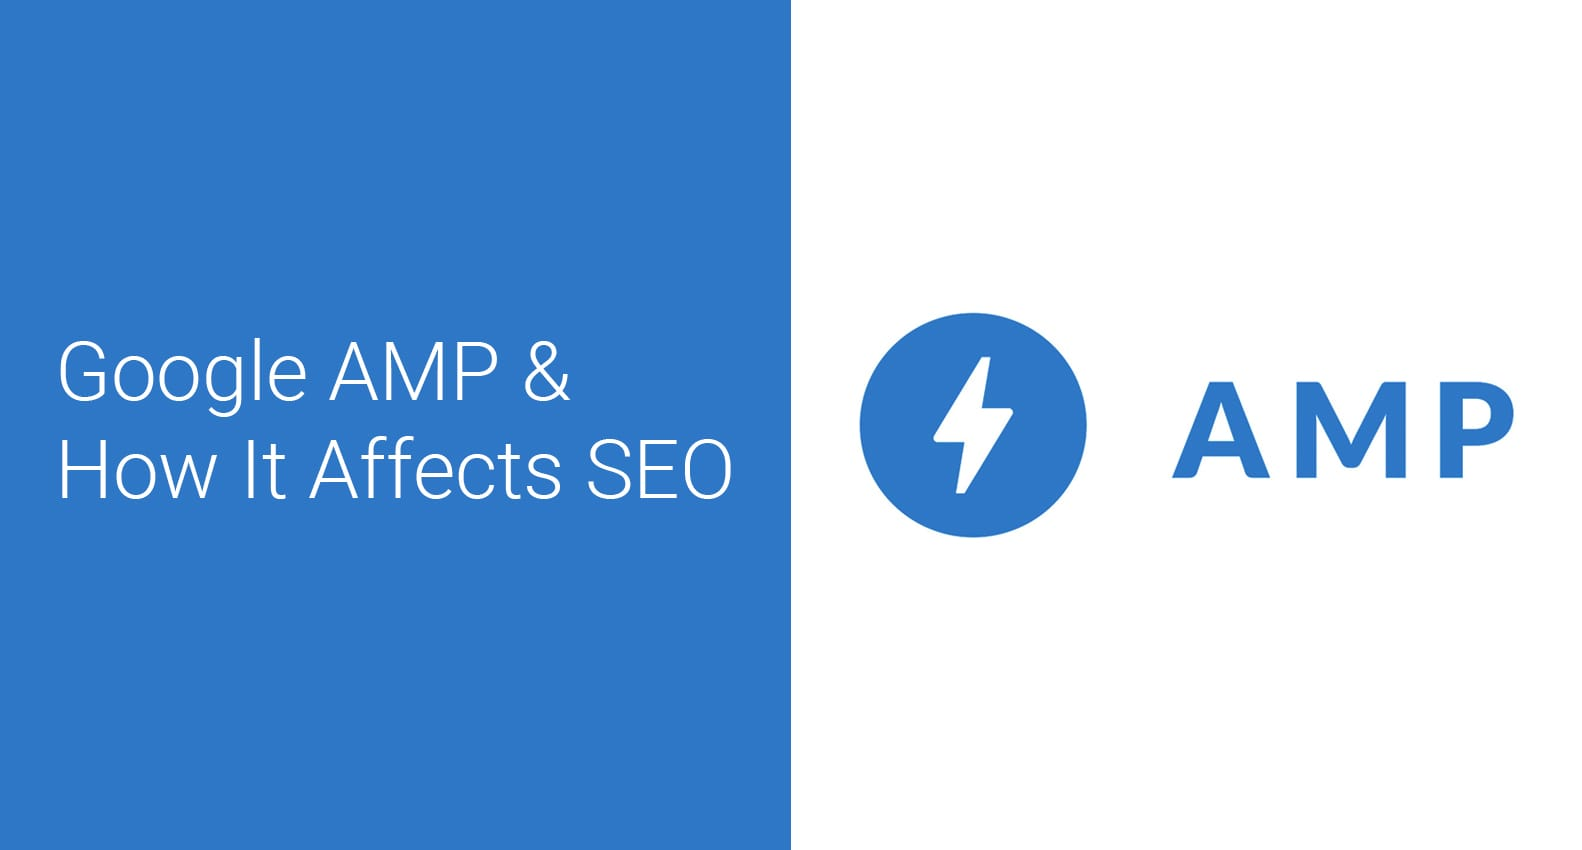 Google AMP and SEO